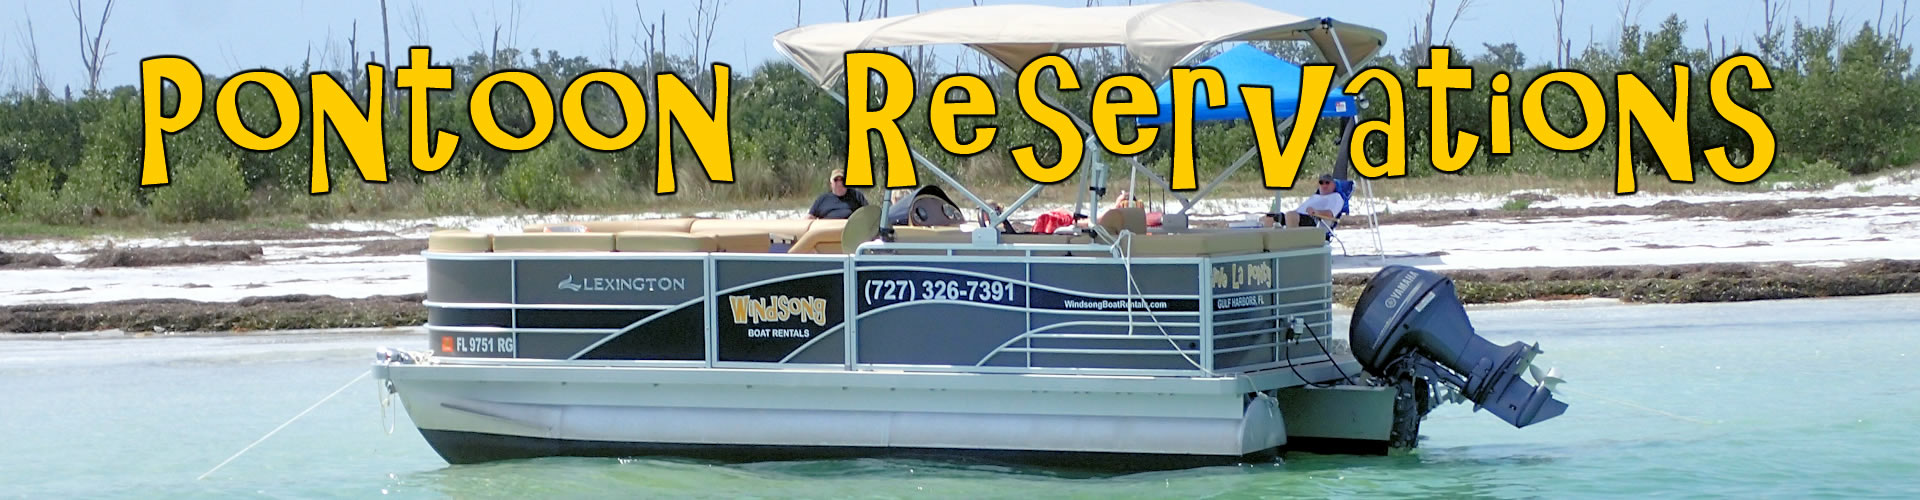 Boat Rental Reservations, Tampa